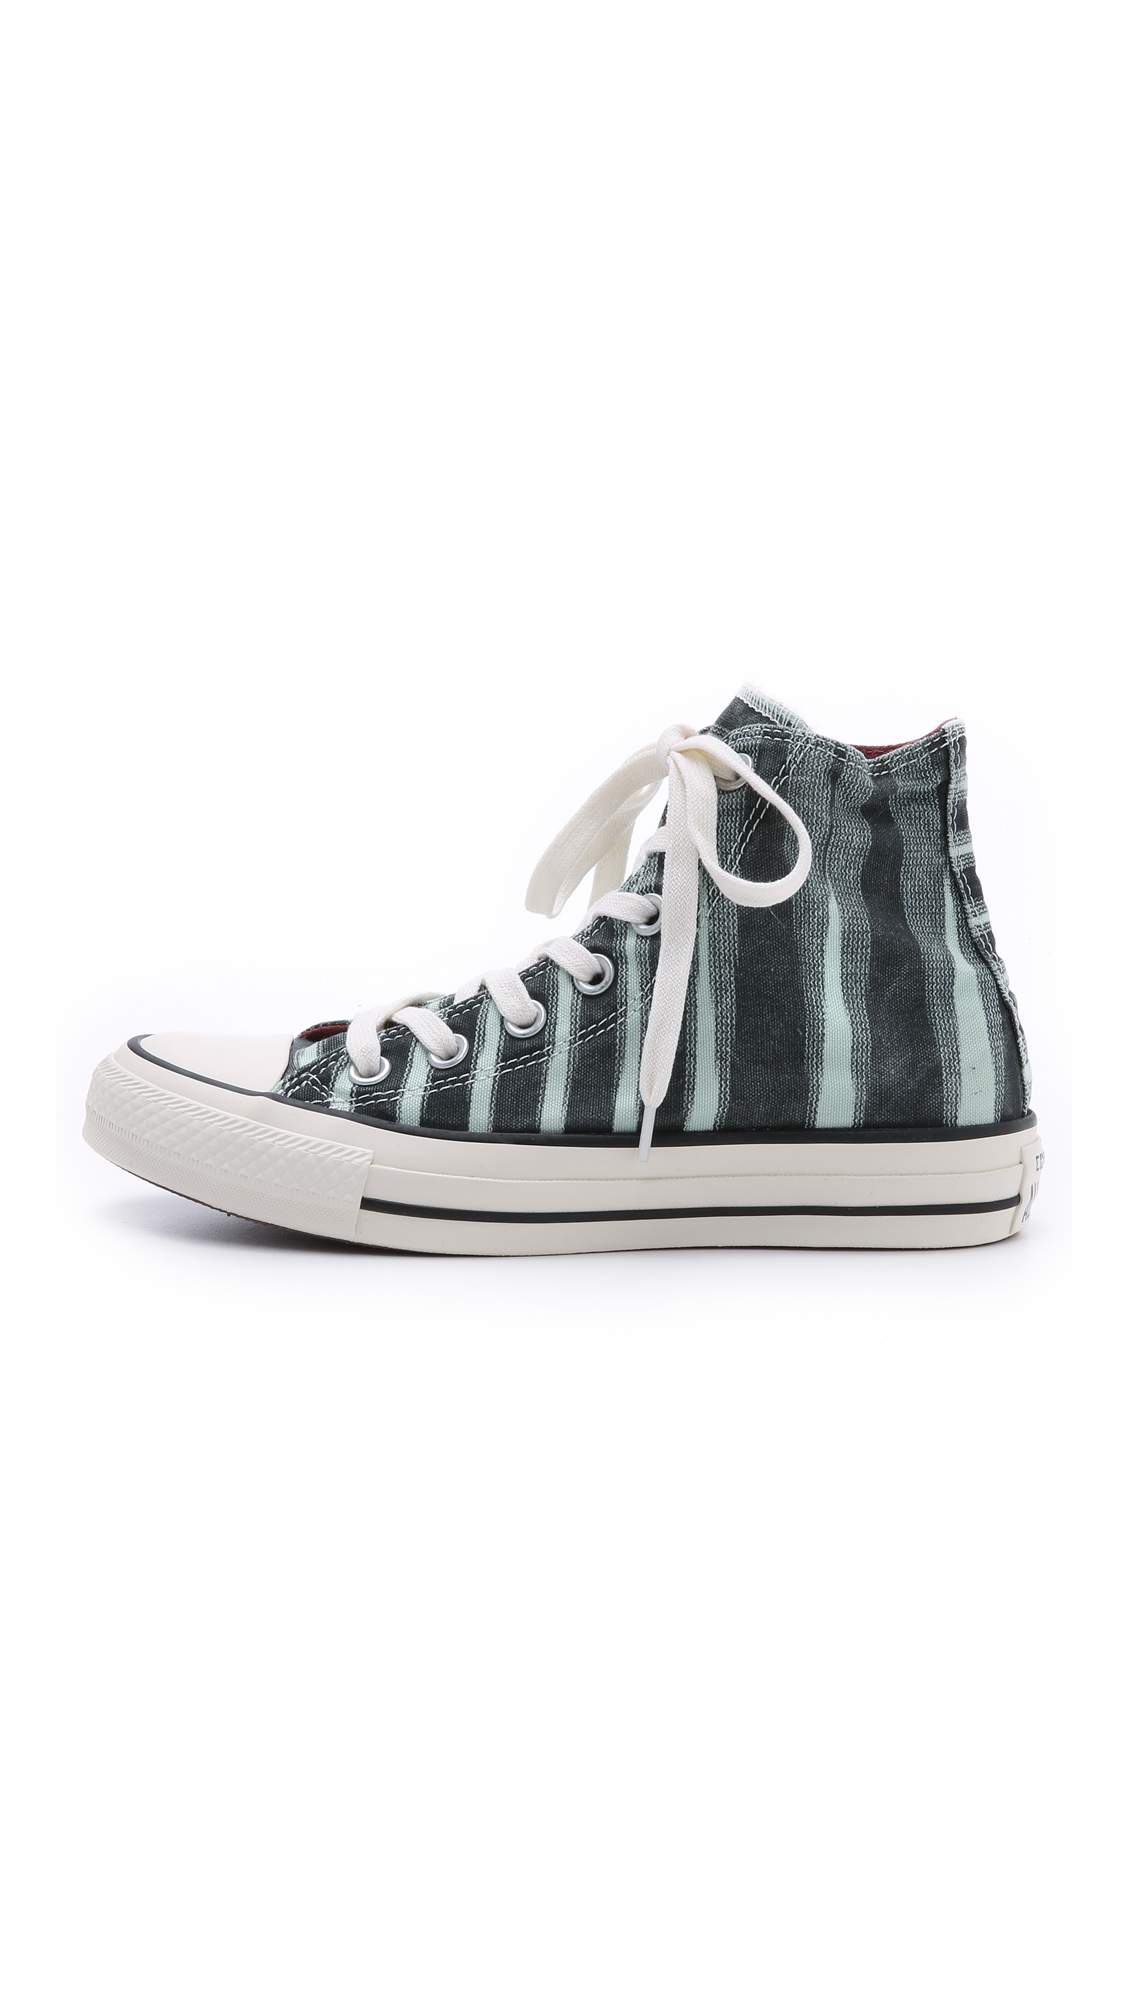 Lyst - Converse Chuck Taylor All Star Missoni High Top Sneakers in Green e0948d911e6